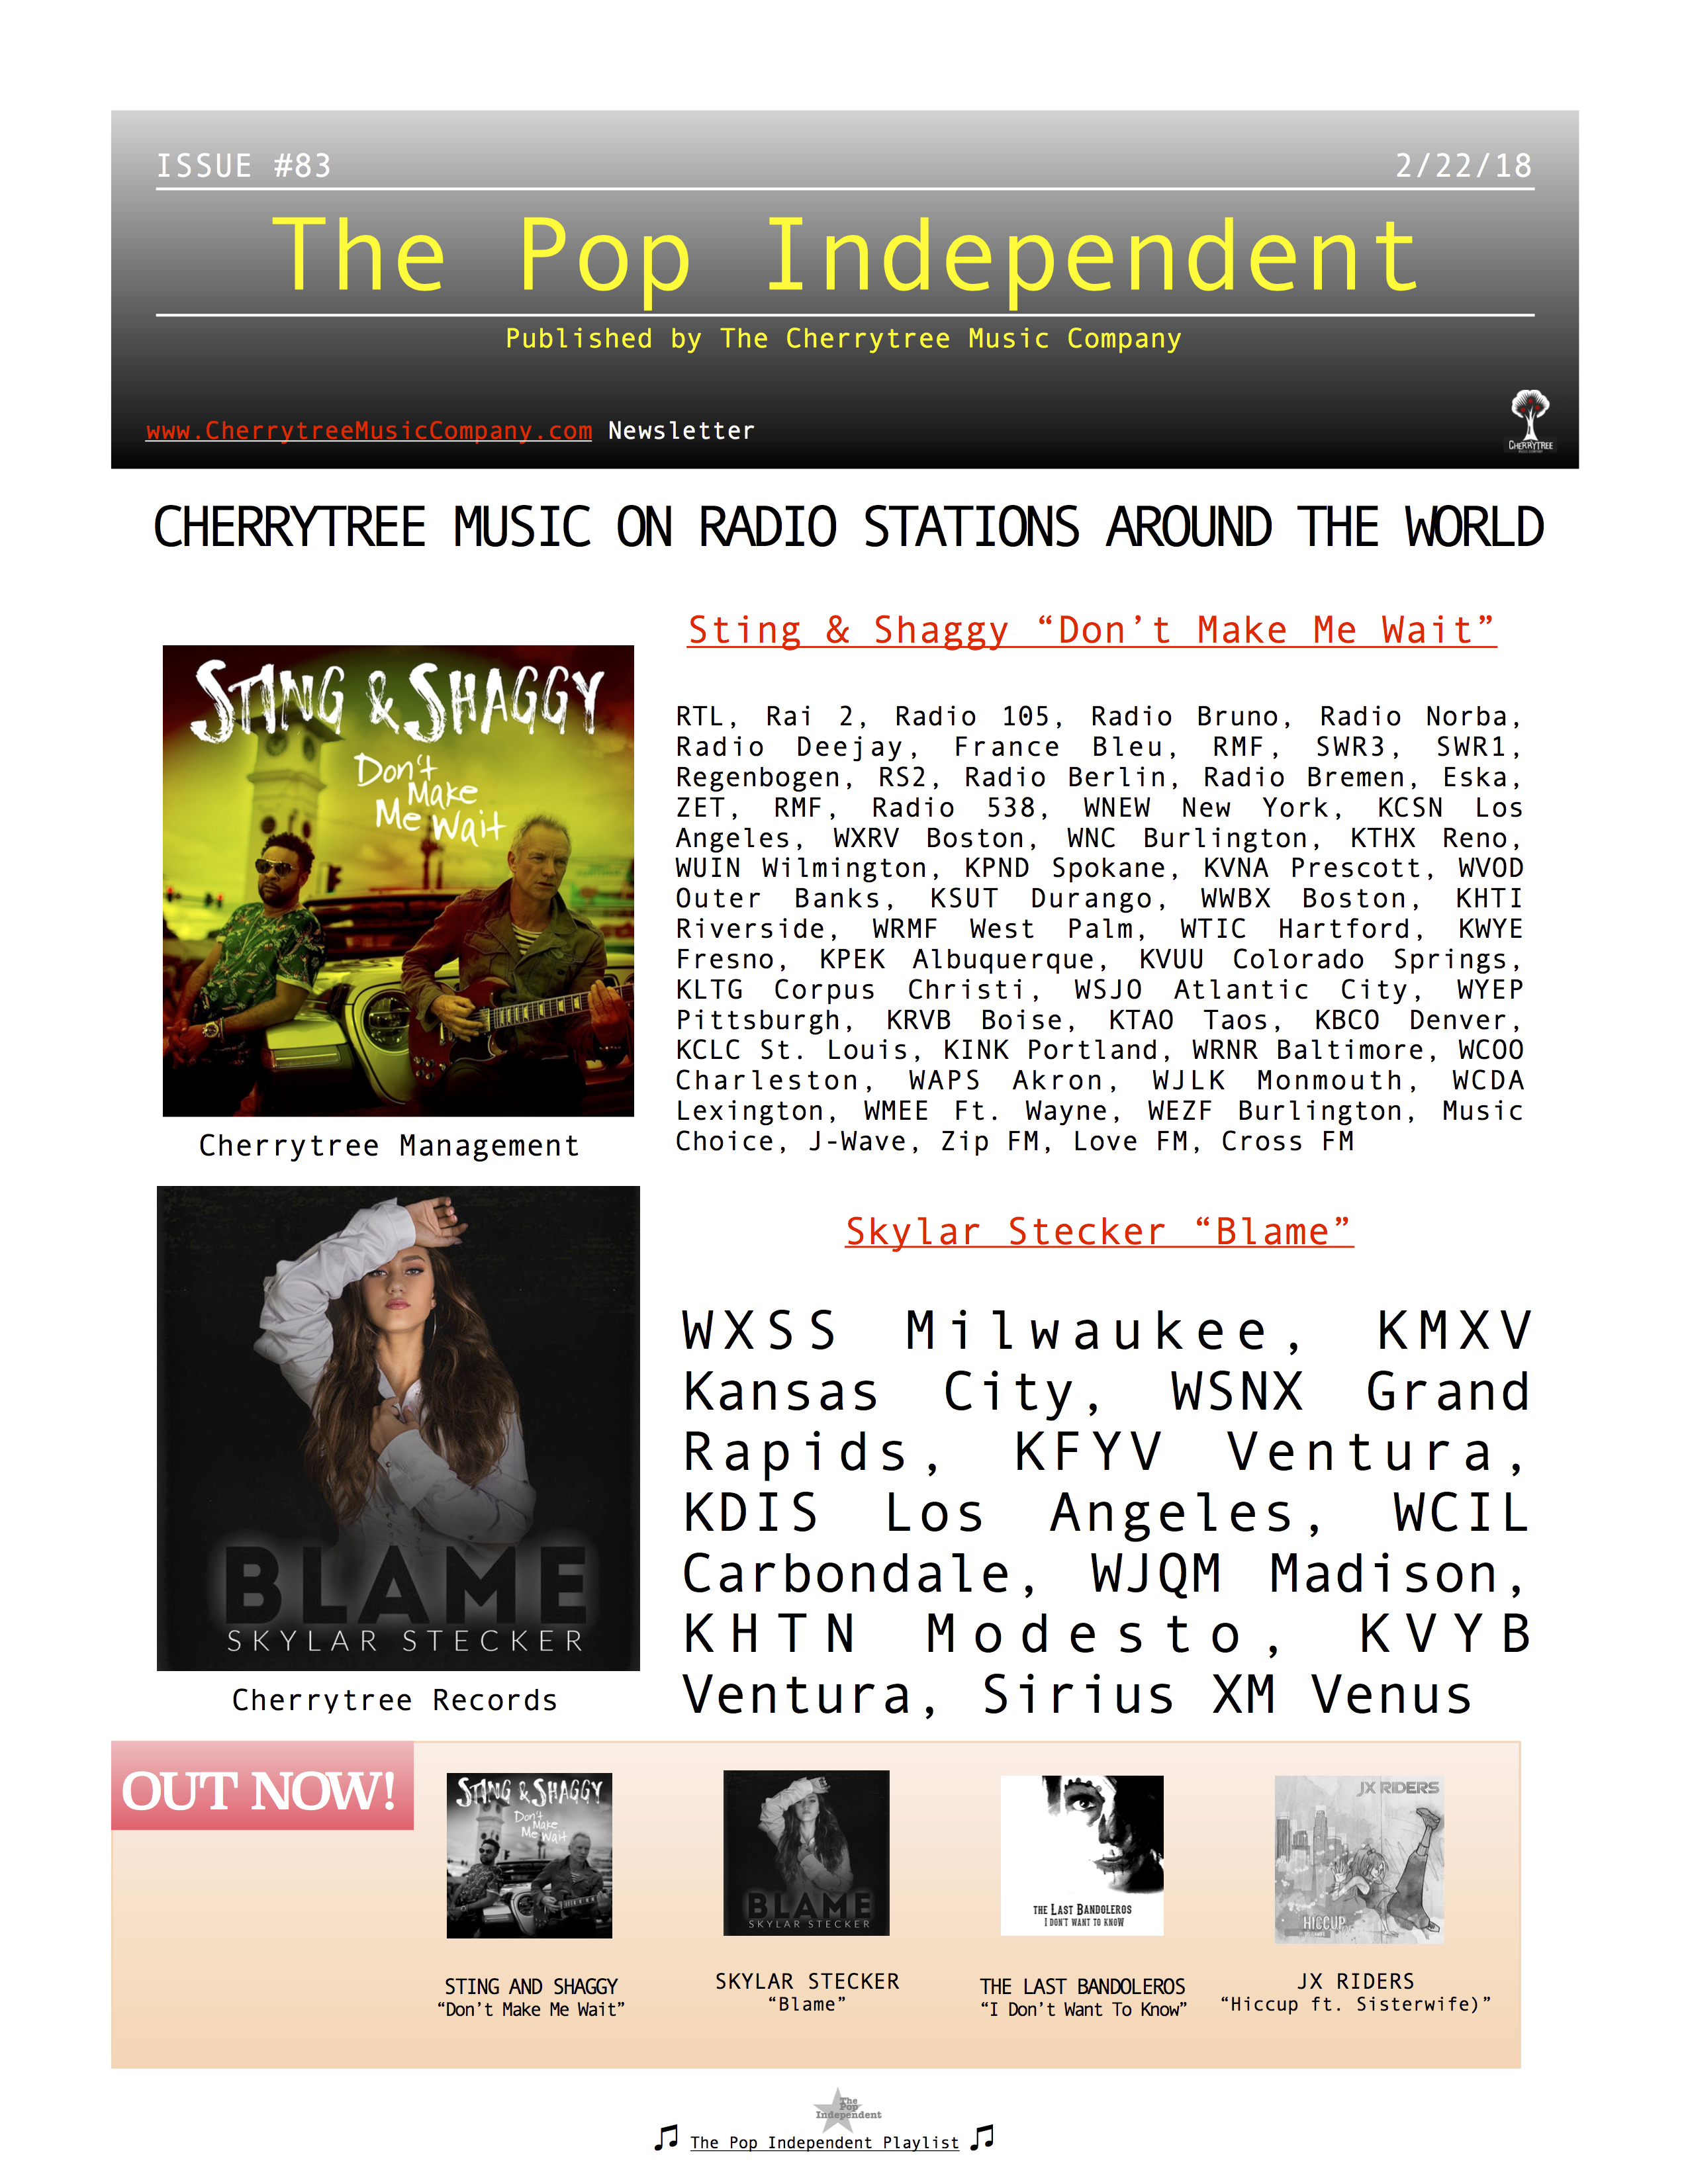 The Pop Independent, issue 83